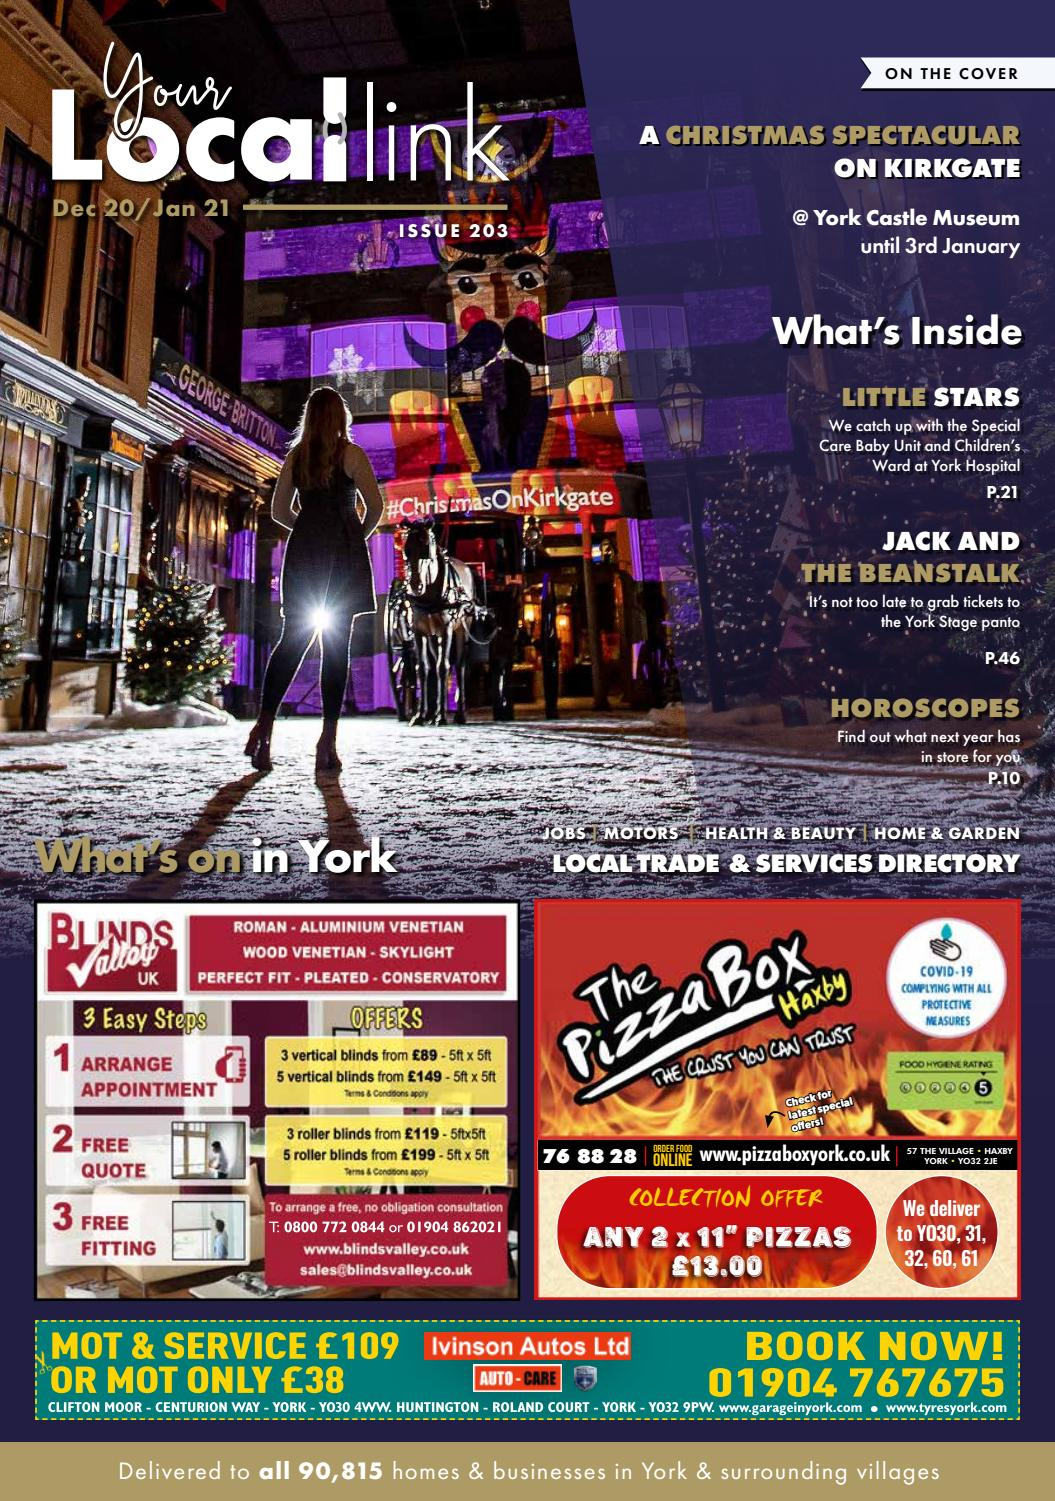 Your Local Link Dec Jan 2021 By Your Local Link Ltd Issuu